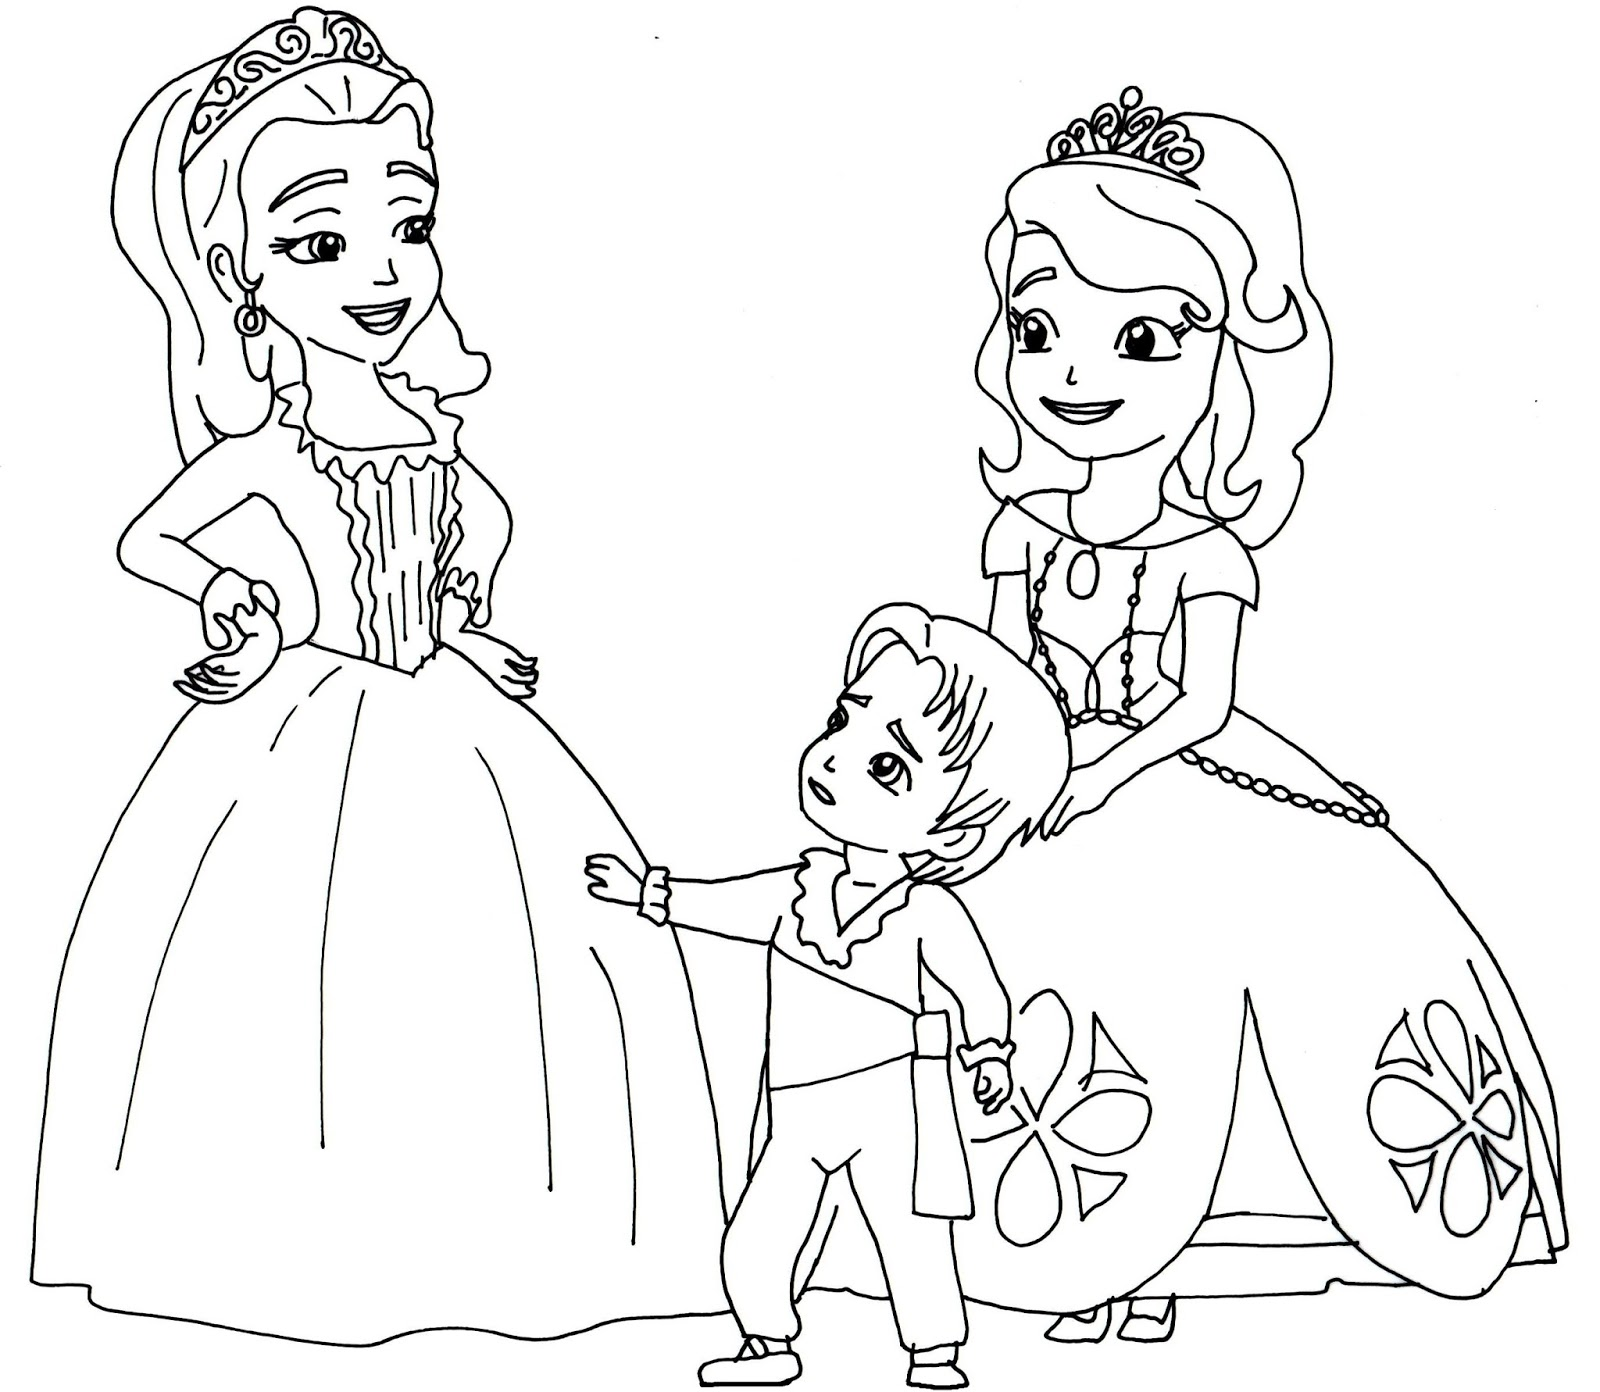 Sofia The First Coloring Pages: Two Princesses and a Baby ...